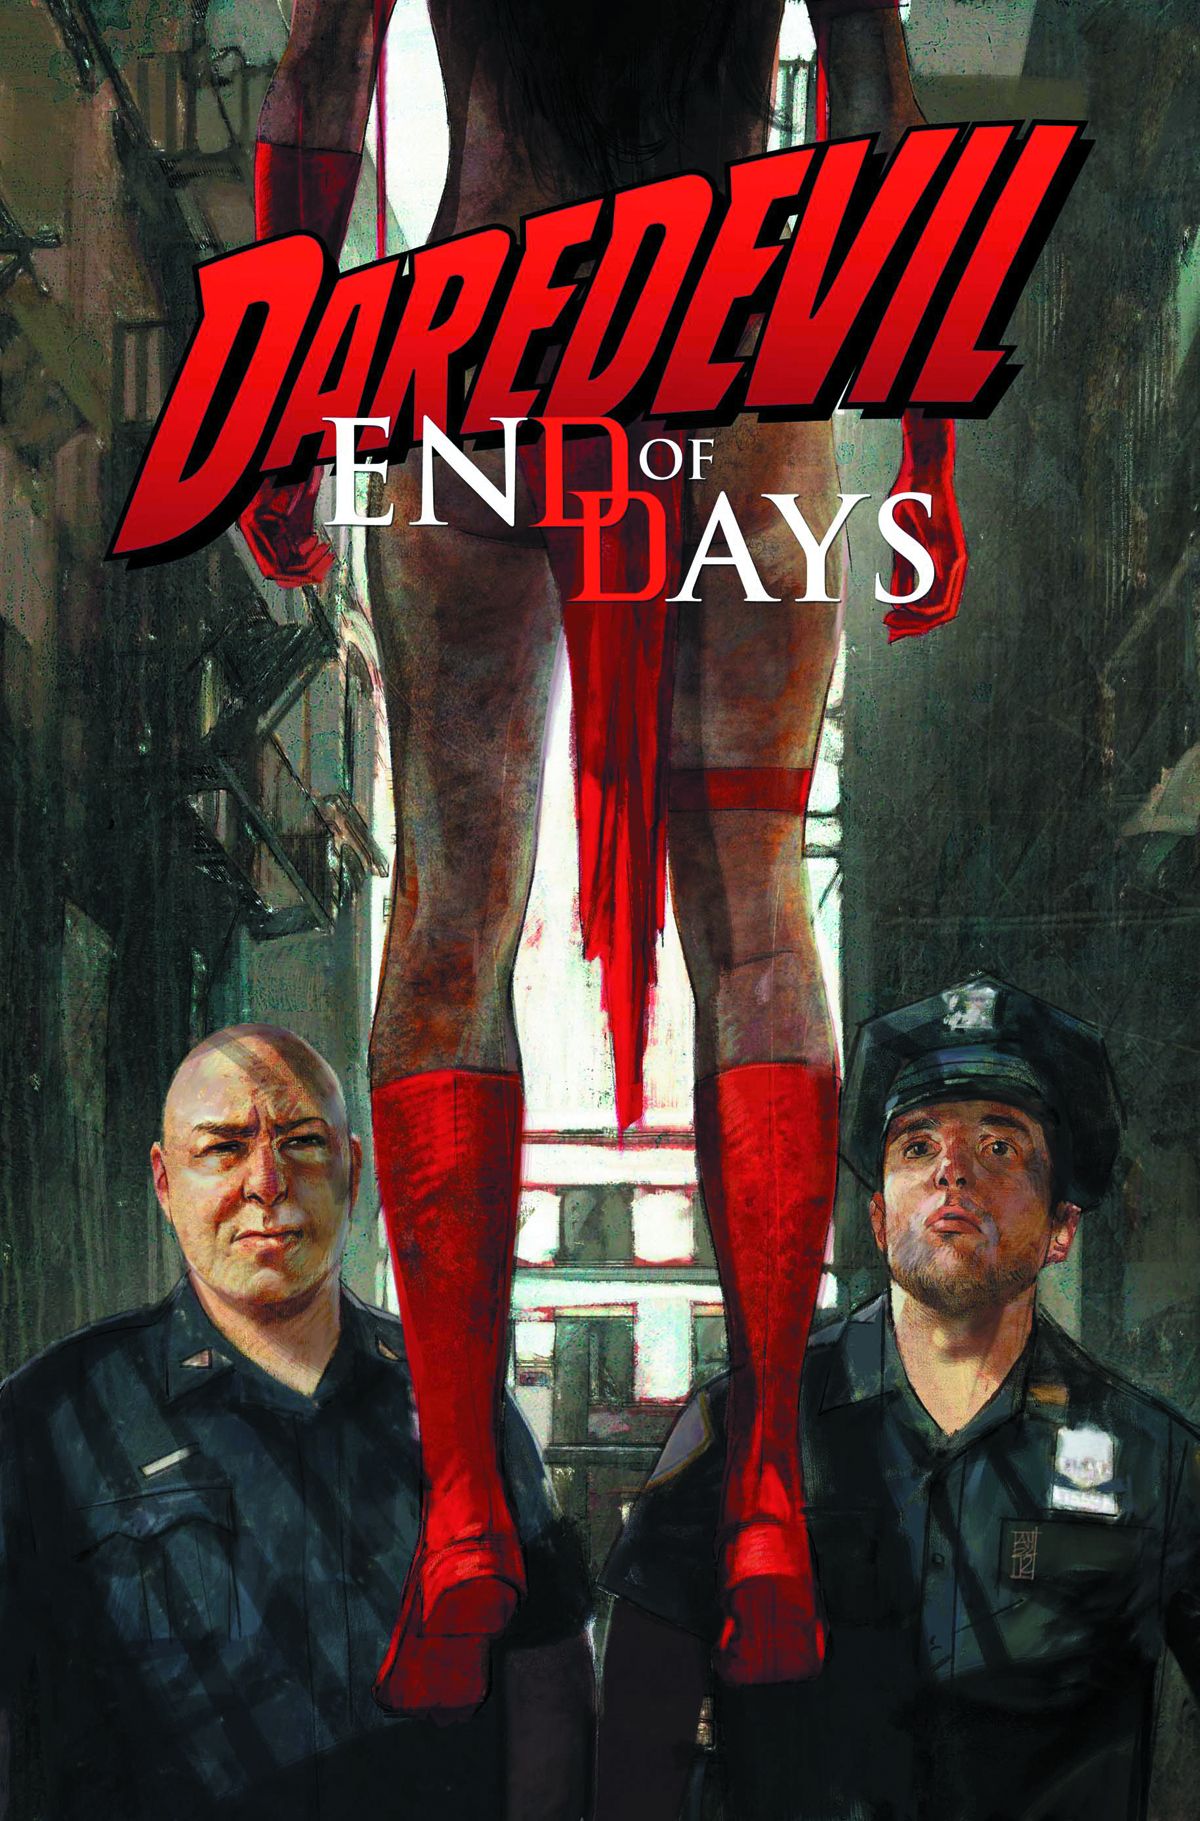 DAREDEVIL END OF DAYS #3